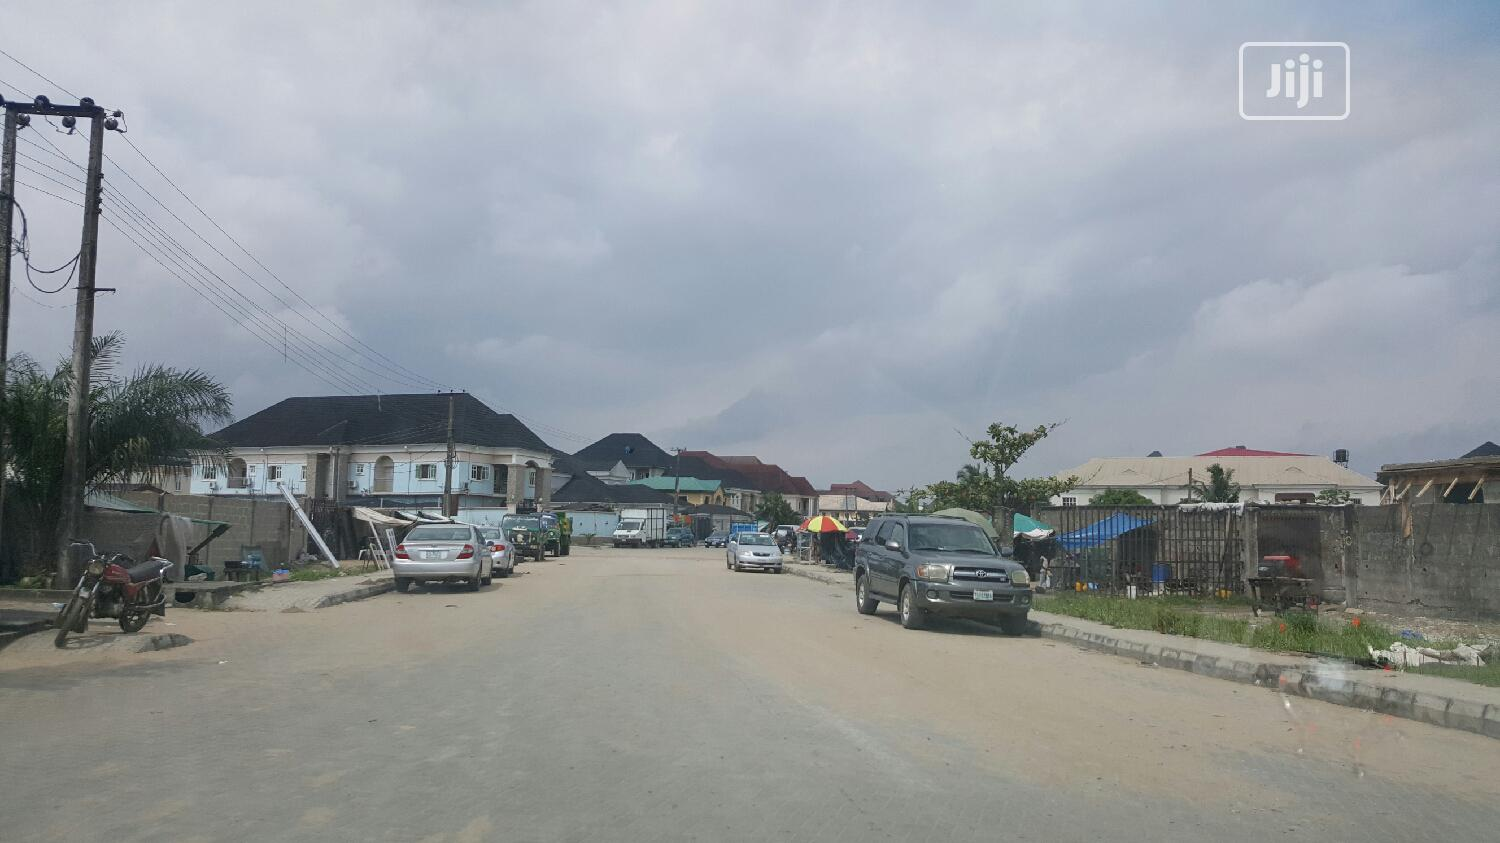 6 Bedroom Duplex At Lakeview Estate Amuwo-odofin For Sale | Houses & Apartments For Sale for sale in Amuwo-Odofin, Lagos State, Nigeria